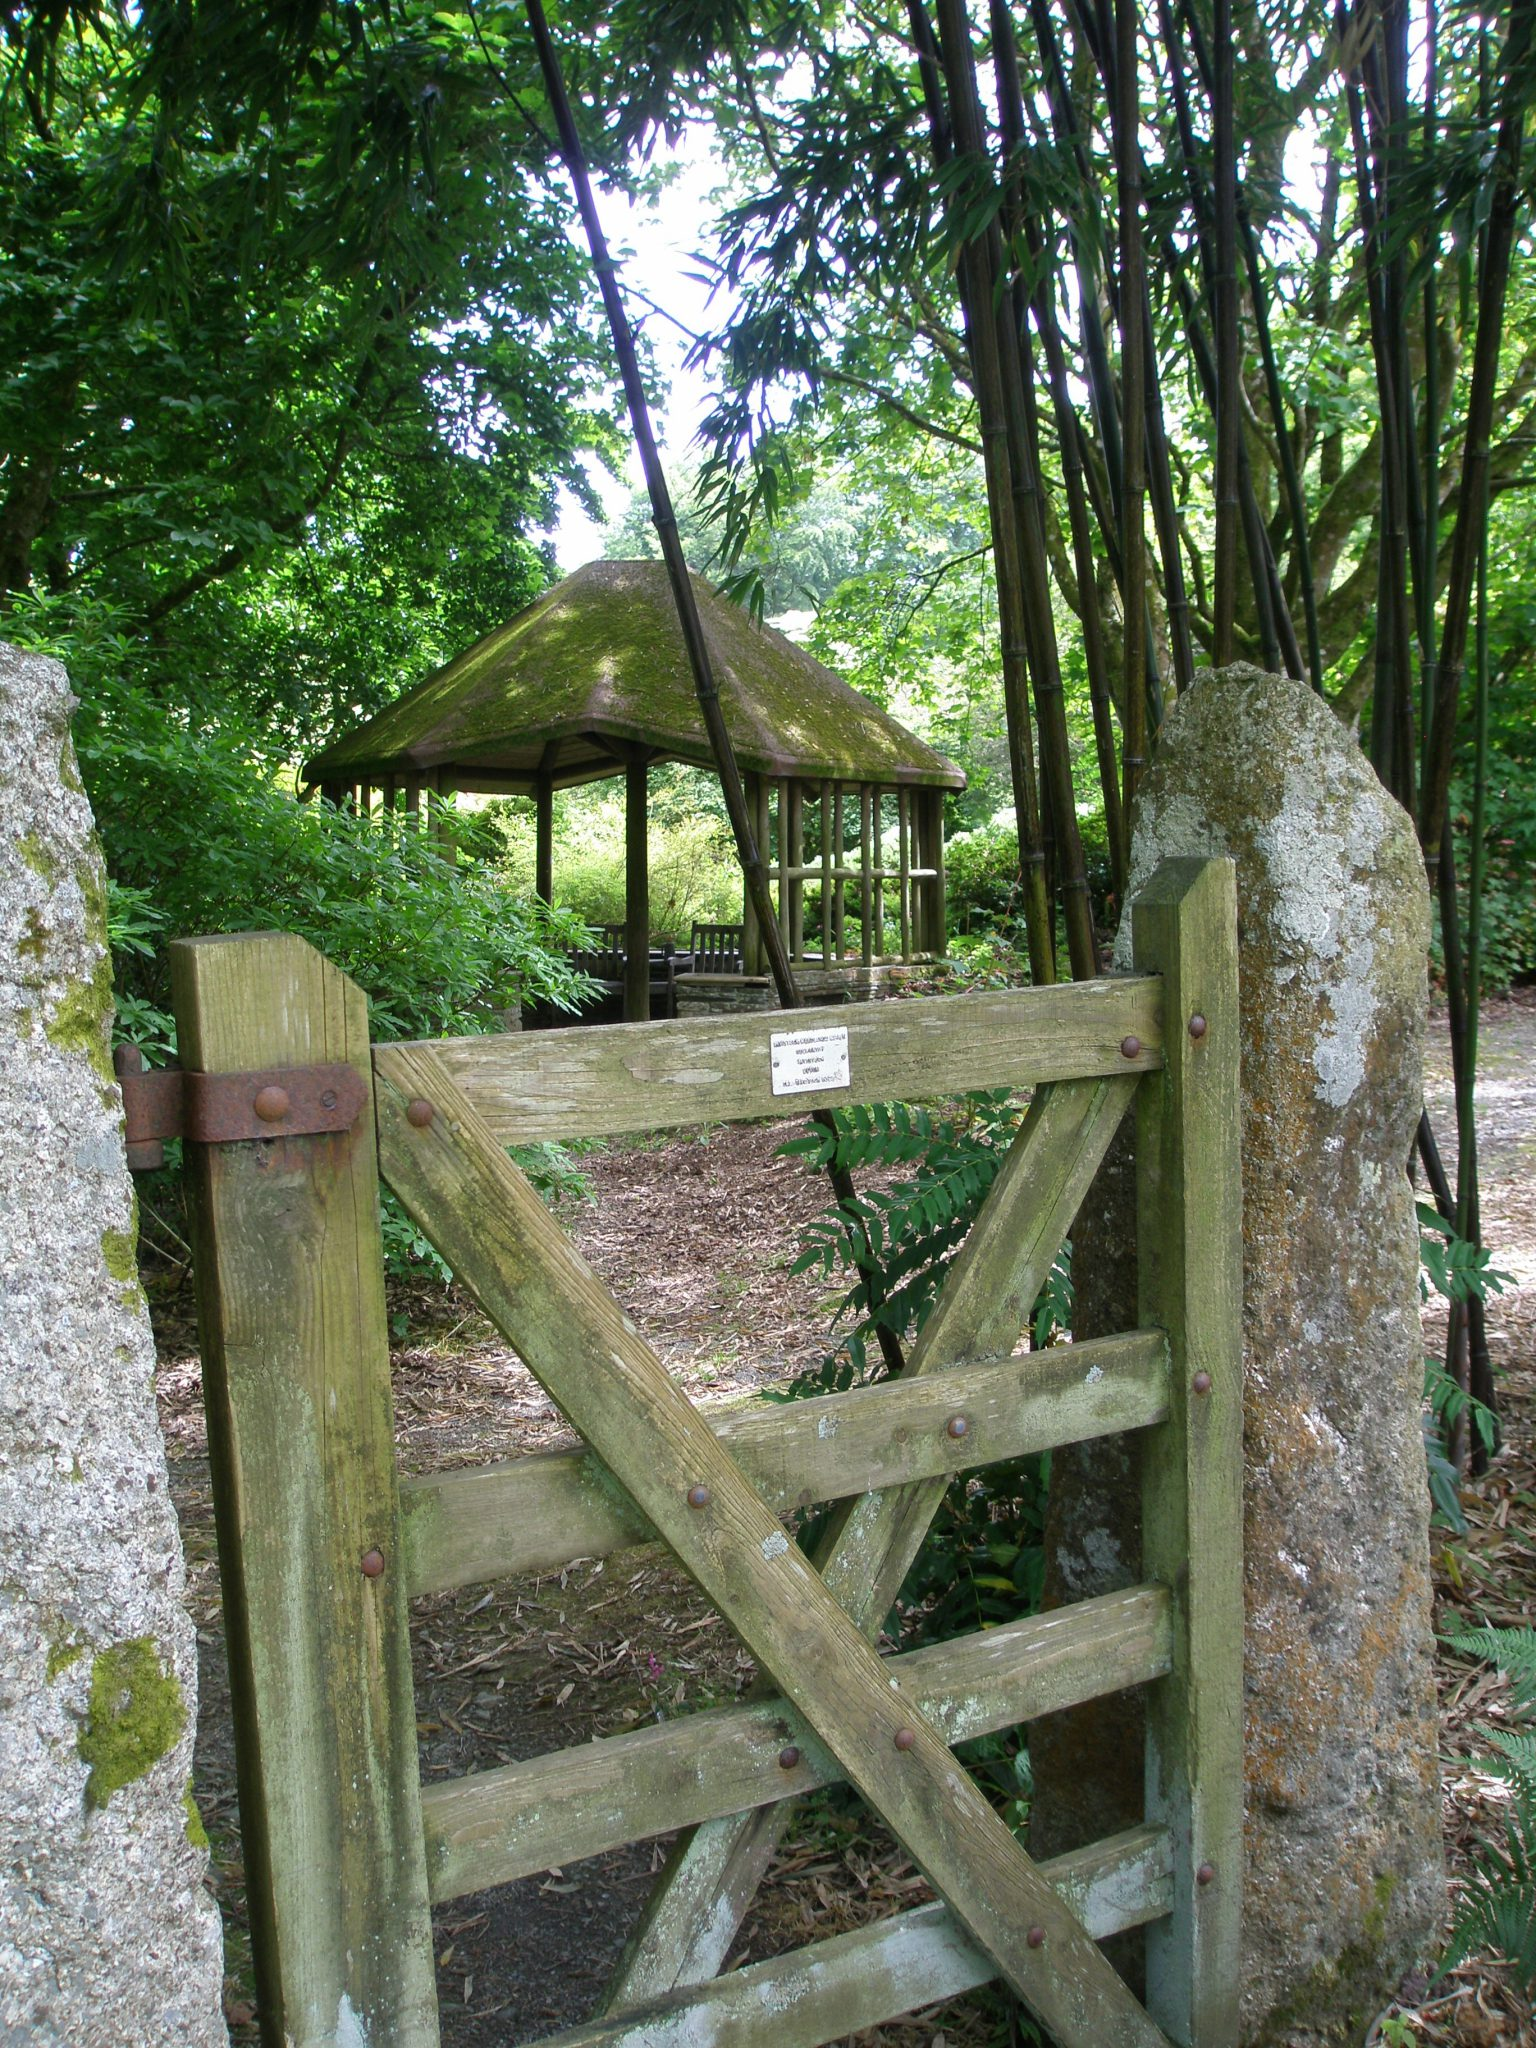 After crossing the Wisteria Bridge, there's this surprise of a Bamboo Grove, which encircles a Rustic Summerhouse.